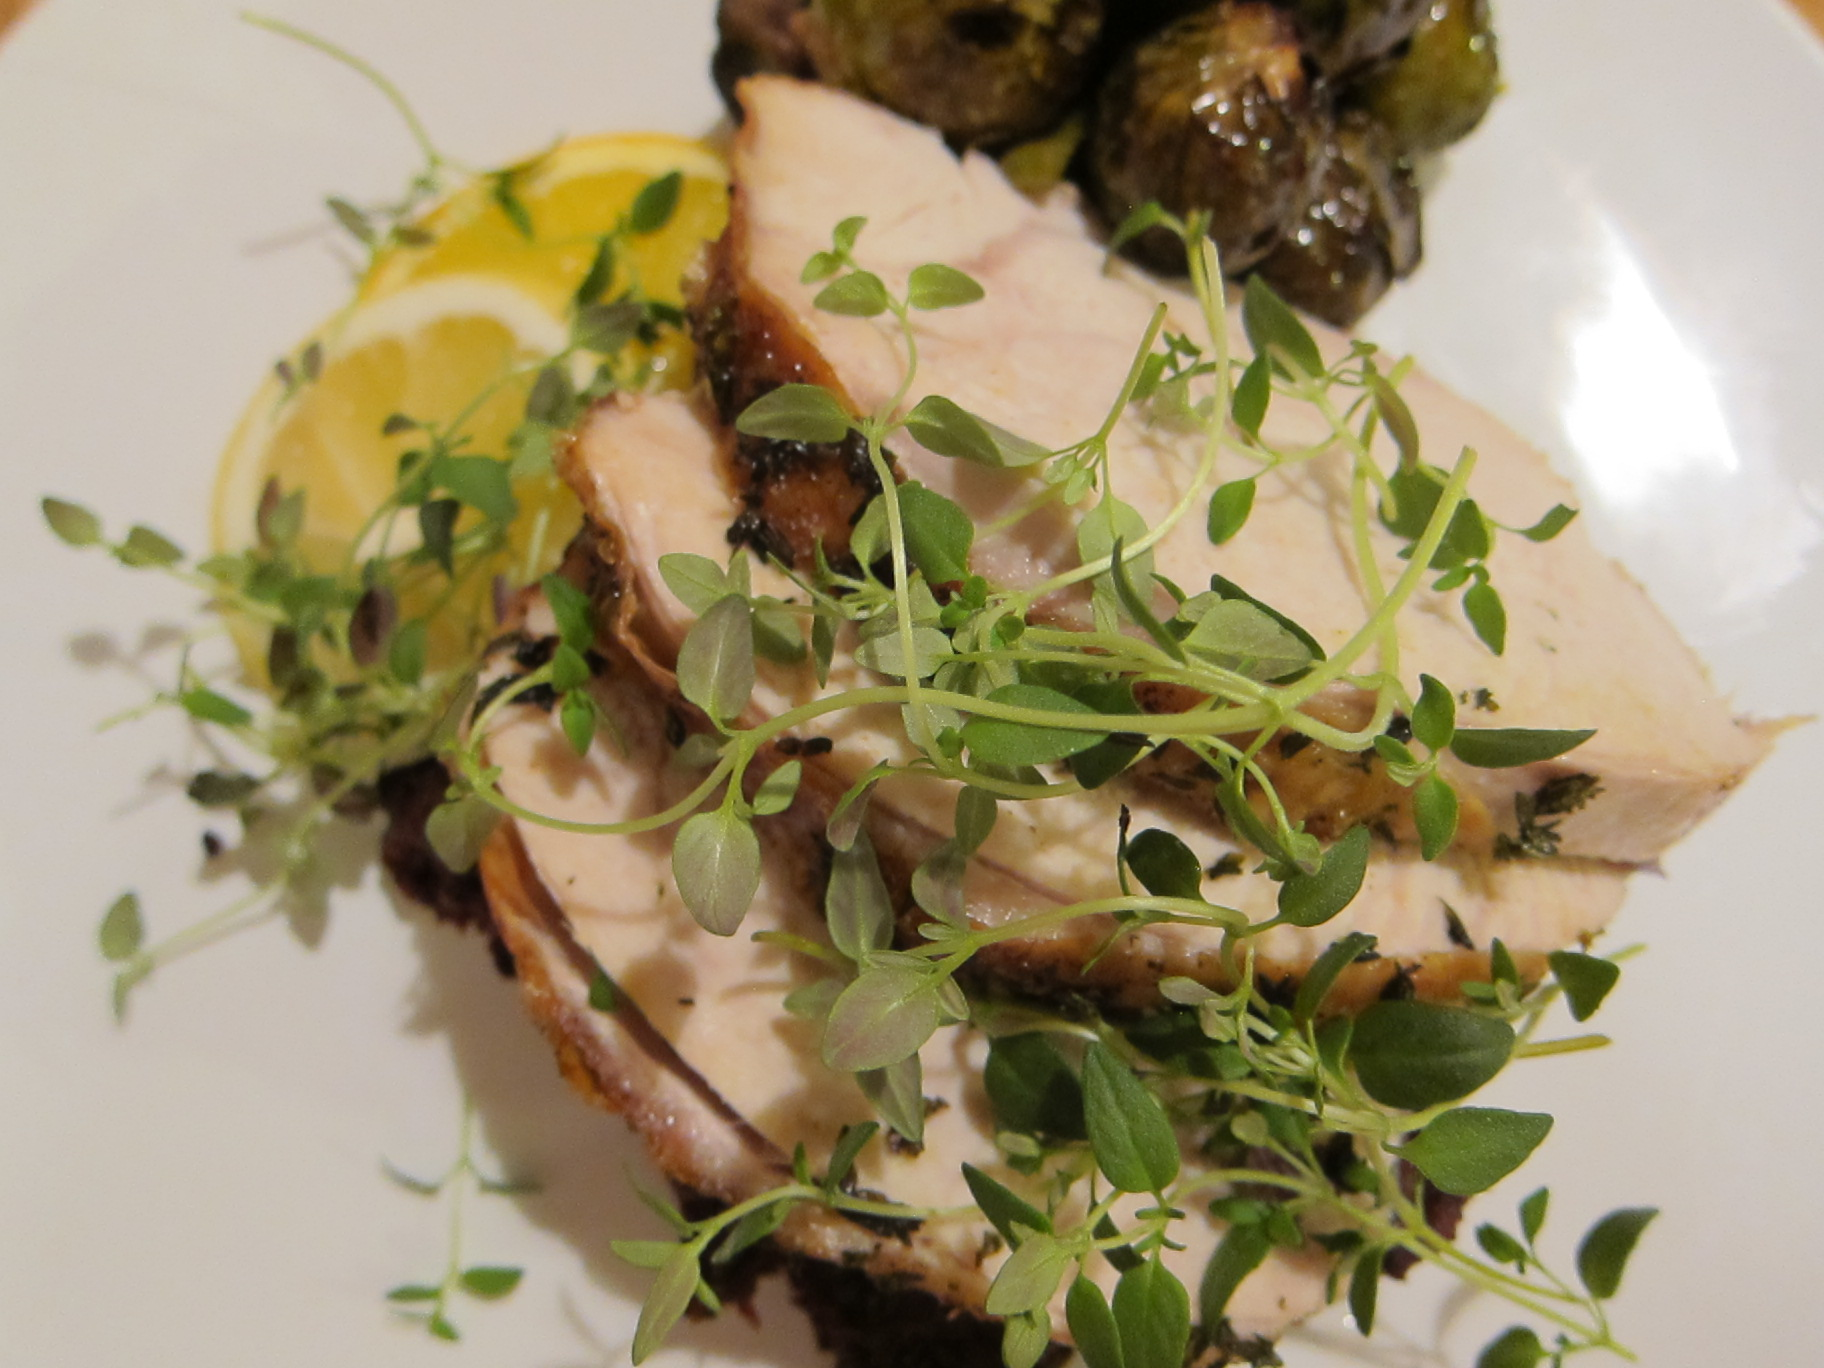 ... Turkey with Smashed Carrots and Roasted Brussels Sprouts and Chestnuts